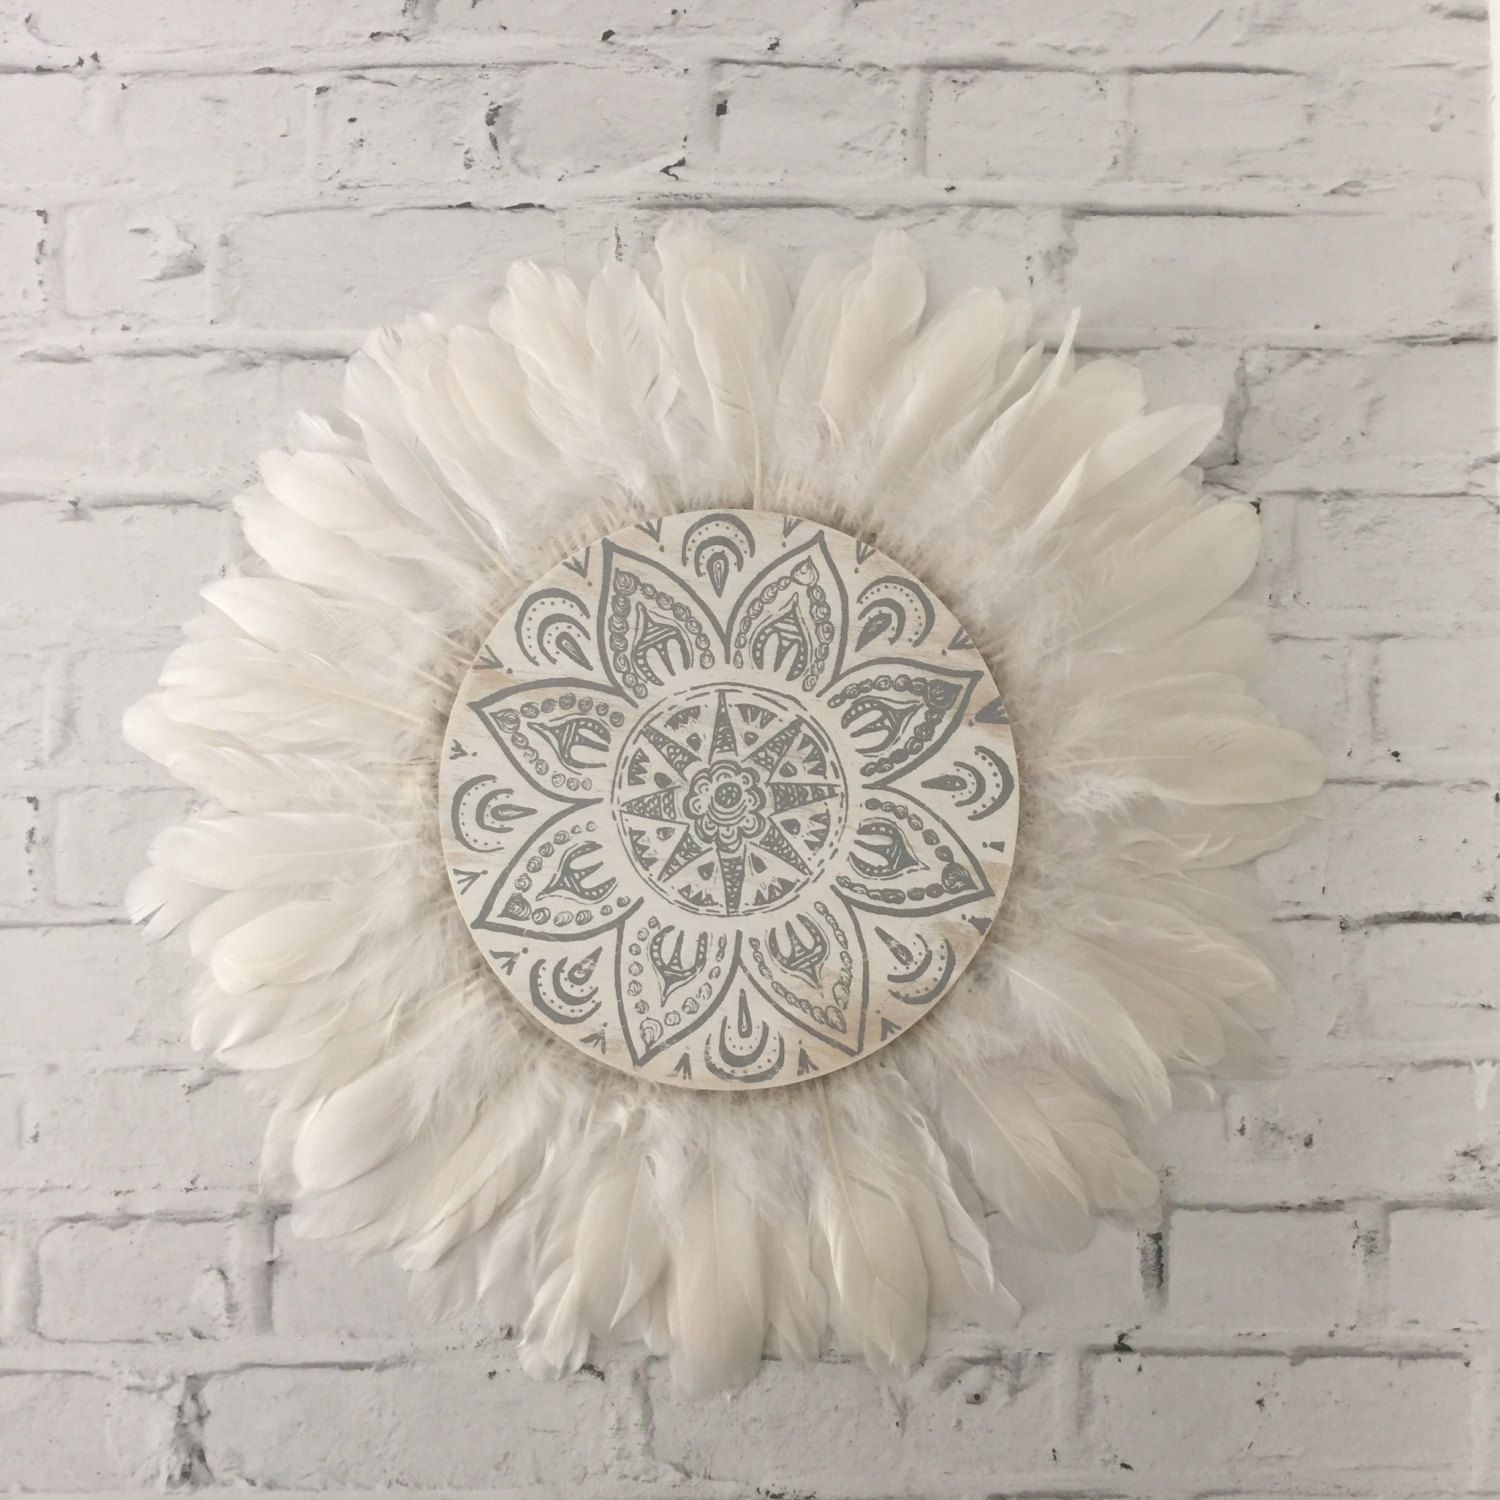 Interesting Wall 3d Round Wall Sculpture Organic Texture Art Gold Throughout 2017 Round Wall Art (View 10 of 20)